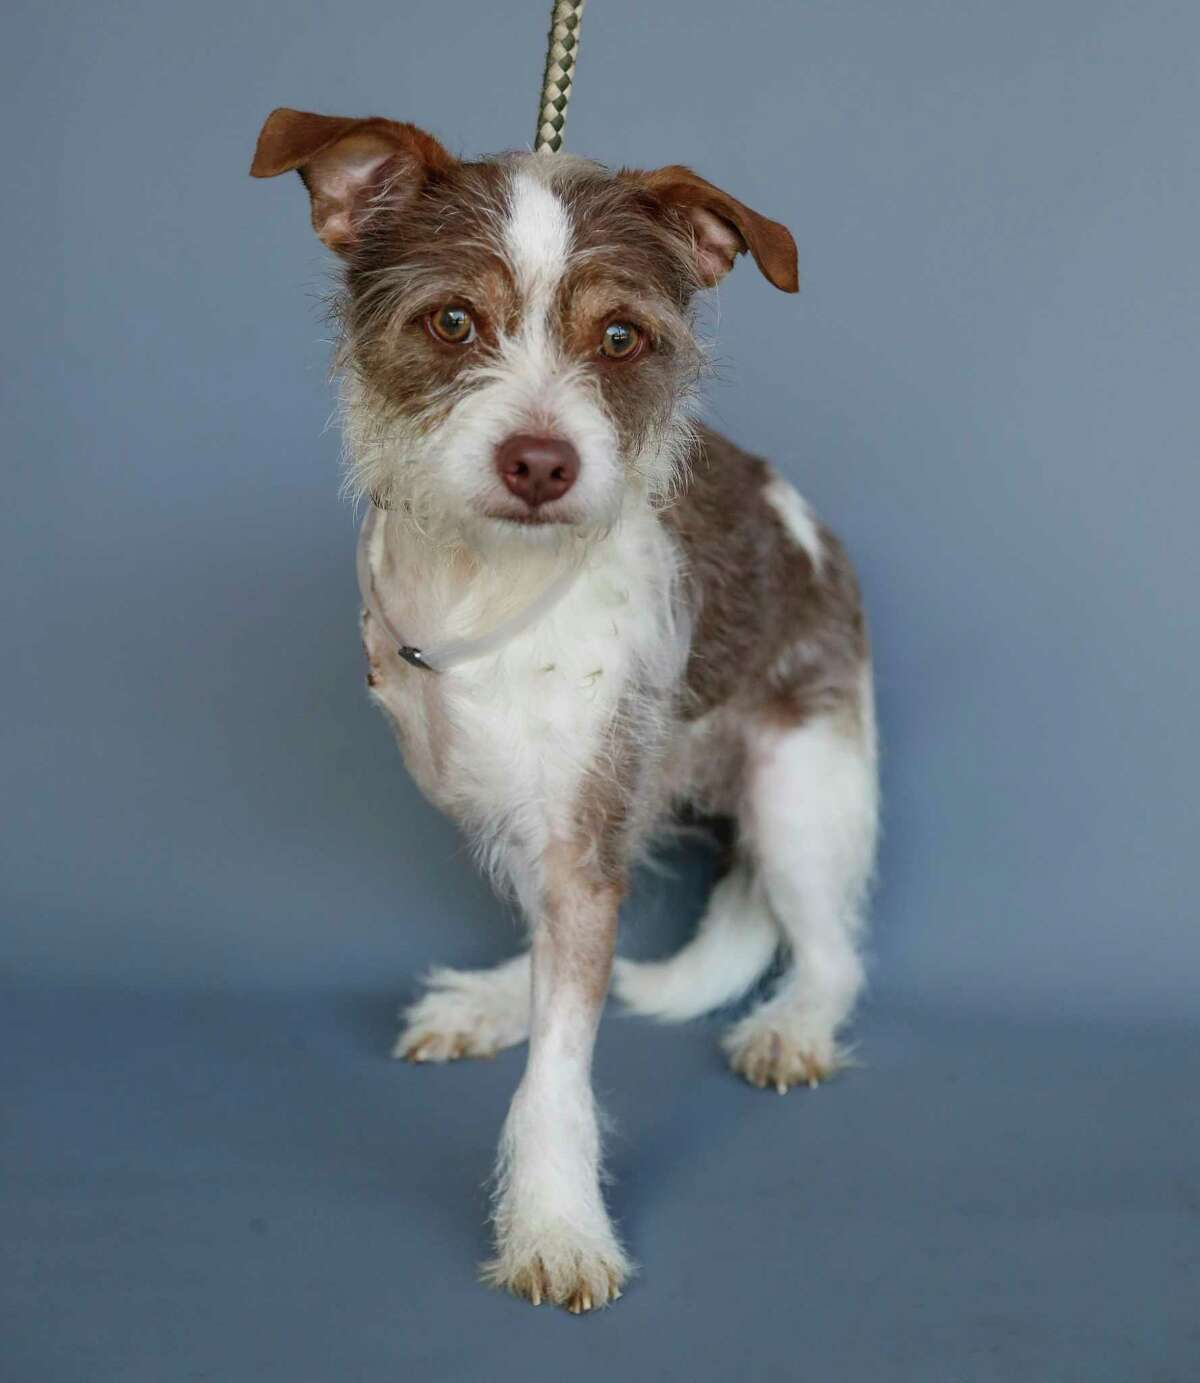 Clark (43993546) is a 3-year-old, male, Terrier mix available for adoption from the Houston Humane Society, in Houston, Tuesday, March 31, 2020. Clark was an injured stray, the person that found him requested euthanasia. However the Humane Society staff worked hard to save him and treated the injury, he is now waiting happily for a chance at a new beginning.